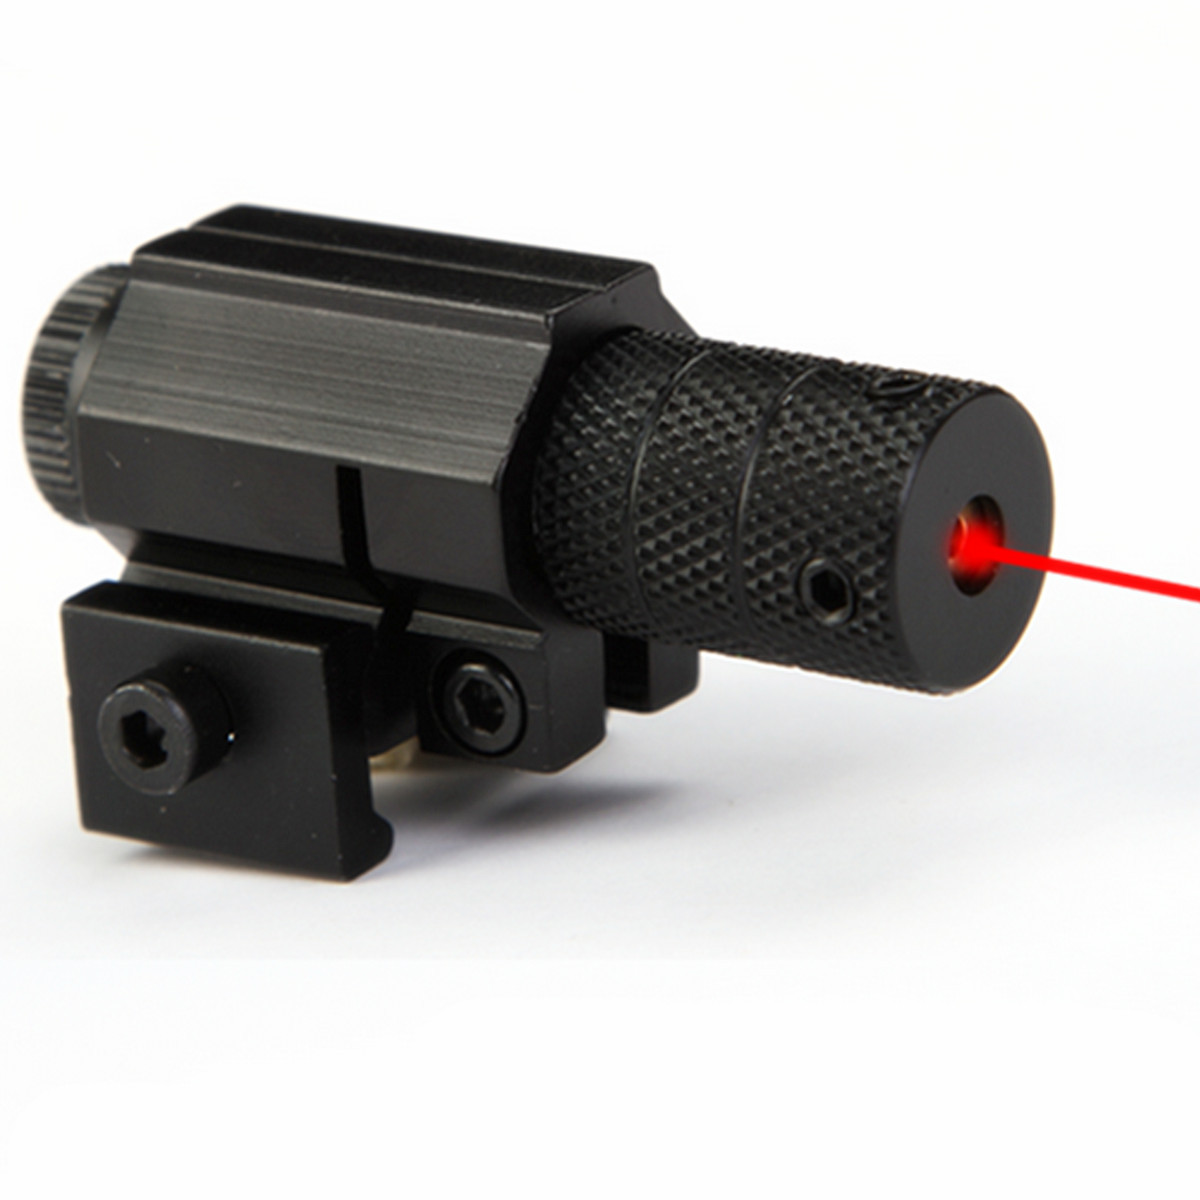 100m 835-655mm Tactical Aiming Red Beam Dot Laser Bore Sight Scope With Mount for Gun Rifle Pistol sniper tactical wkp 1 5 6x44sal riflescope glass etched reticle hunting optics sight with rg illuminated with bubble level scope